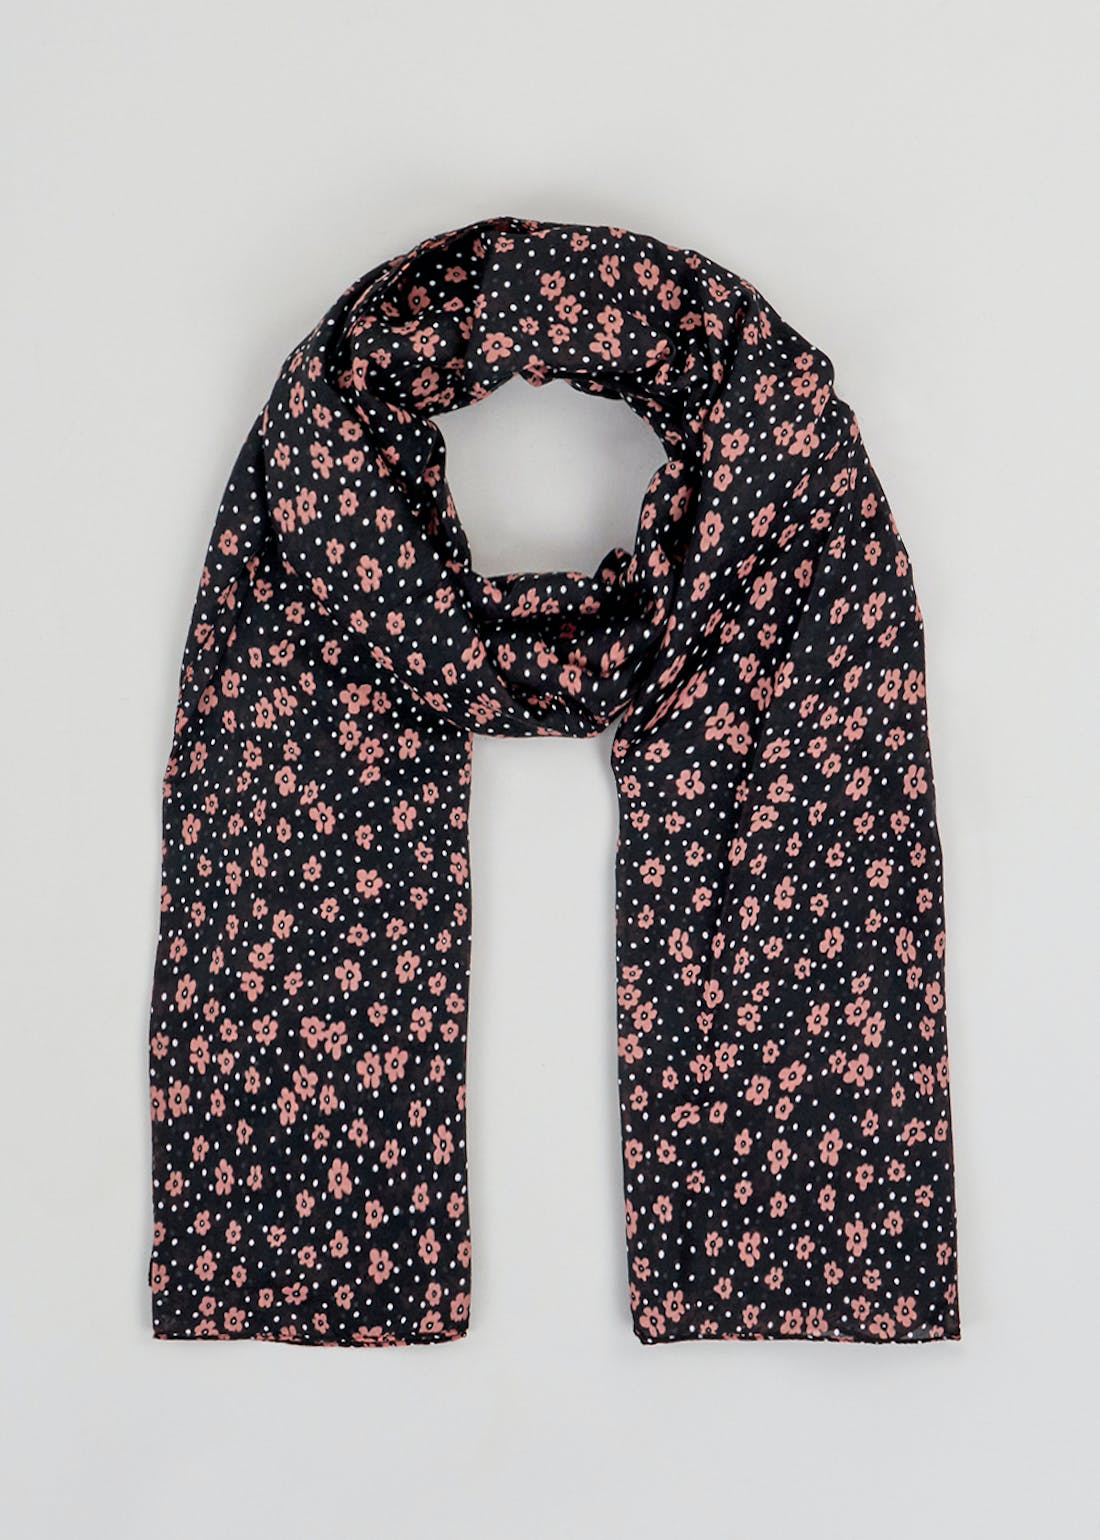 Dotted Floral Woven Scarf